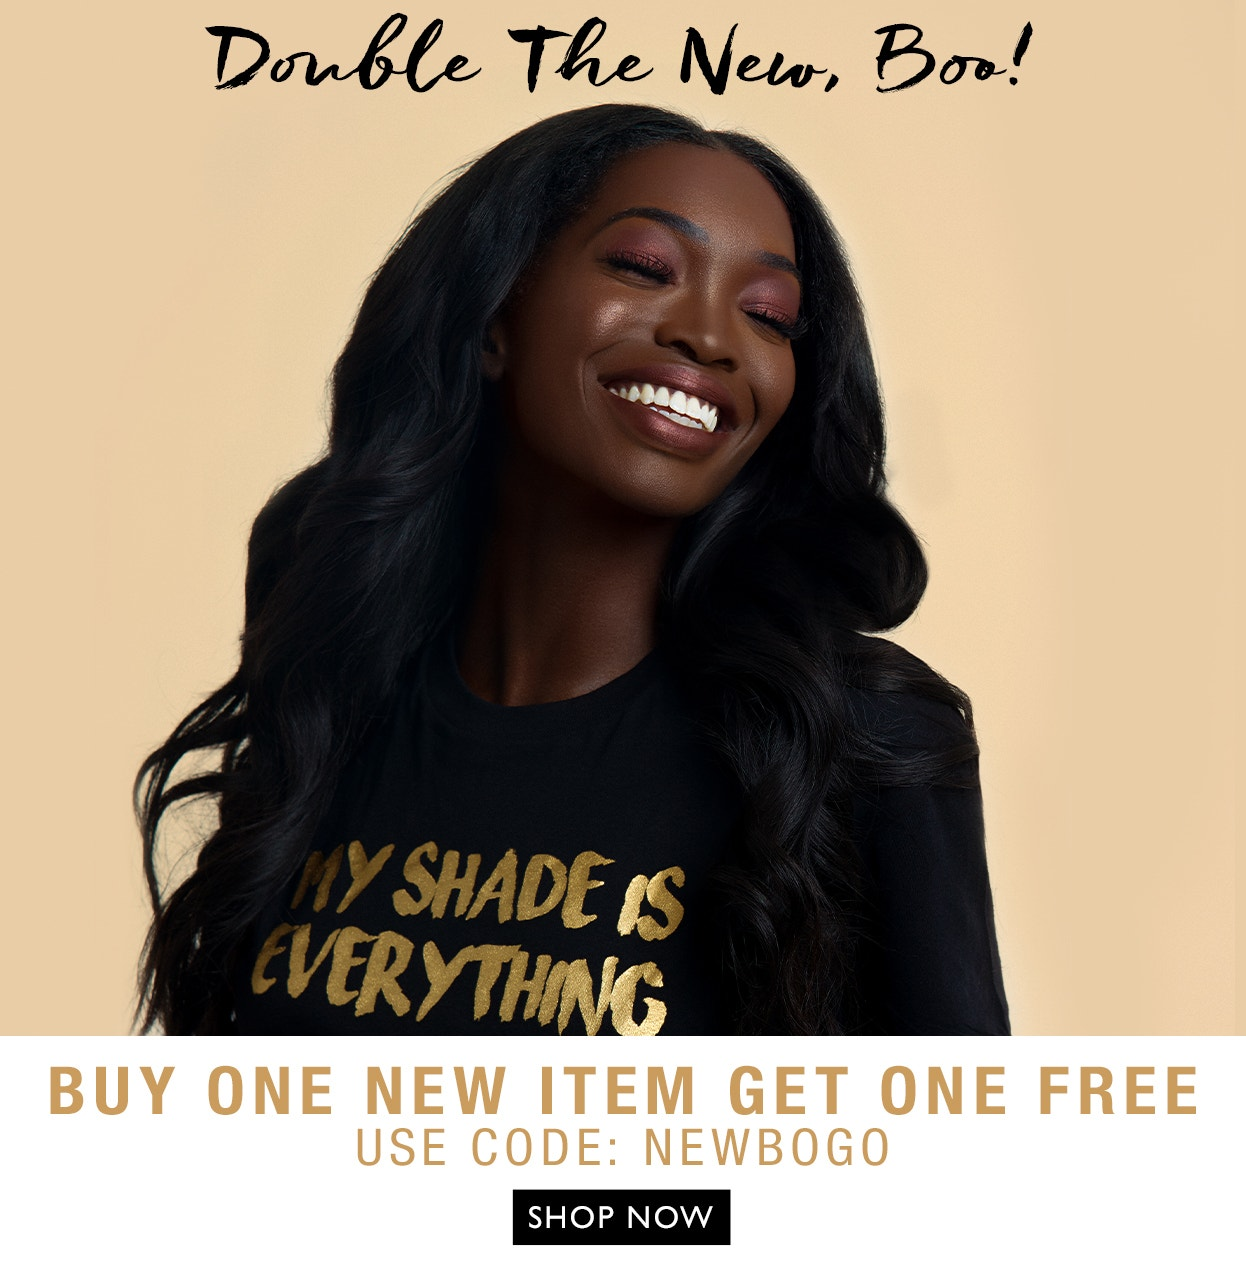 Double the New, Boo! Buy one new item get one Free - Use Code: NEWBOGO | Black Radiance - Model image with beige background